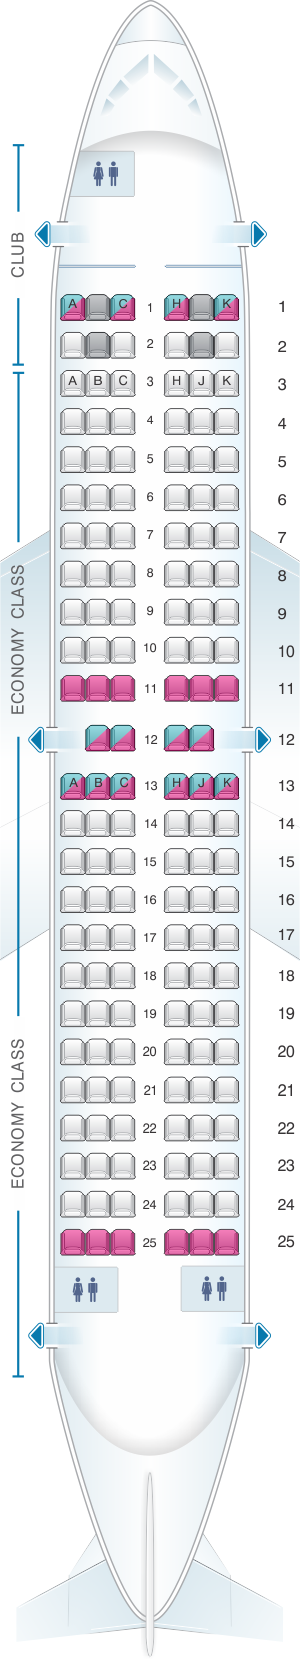 Seat map for Air Transat Boeing 737-700 Canada